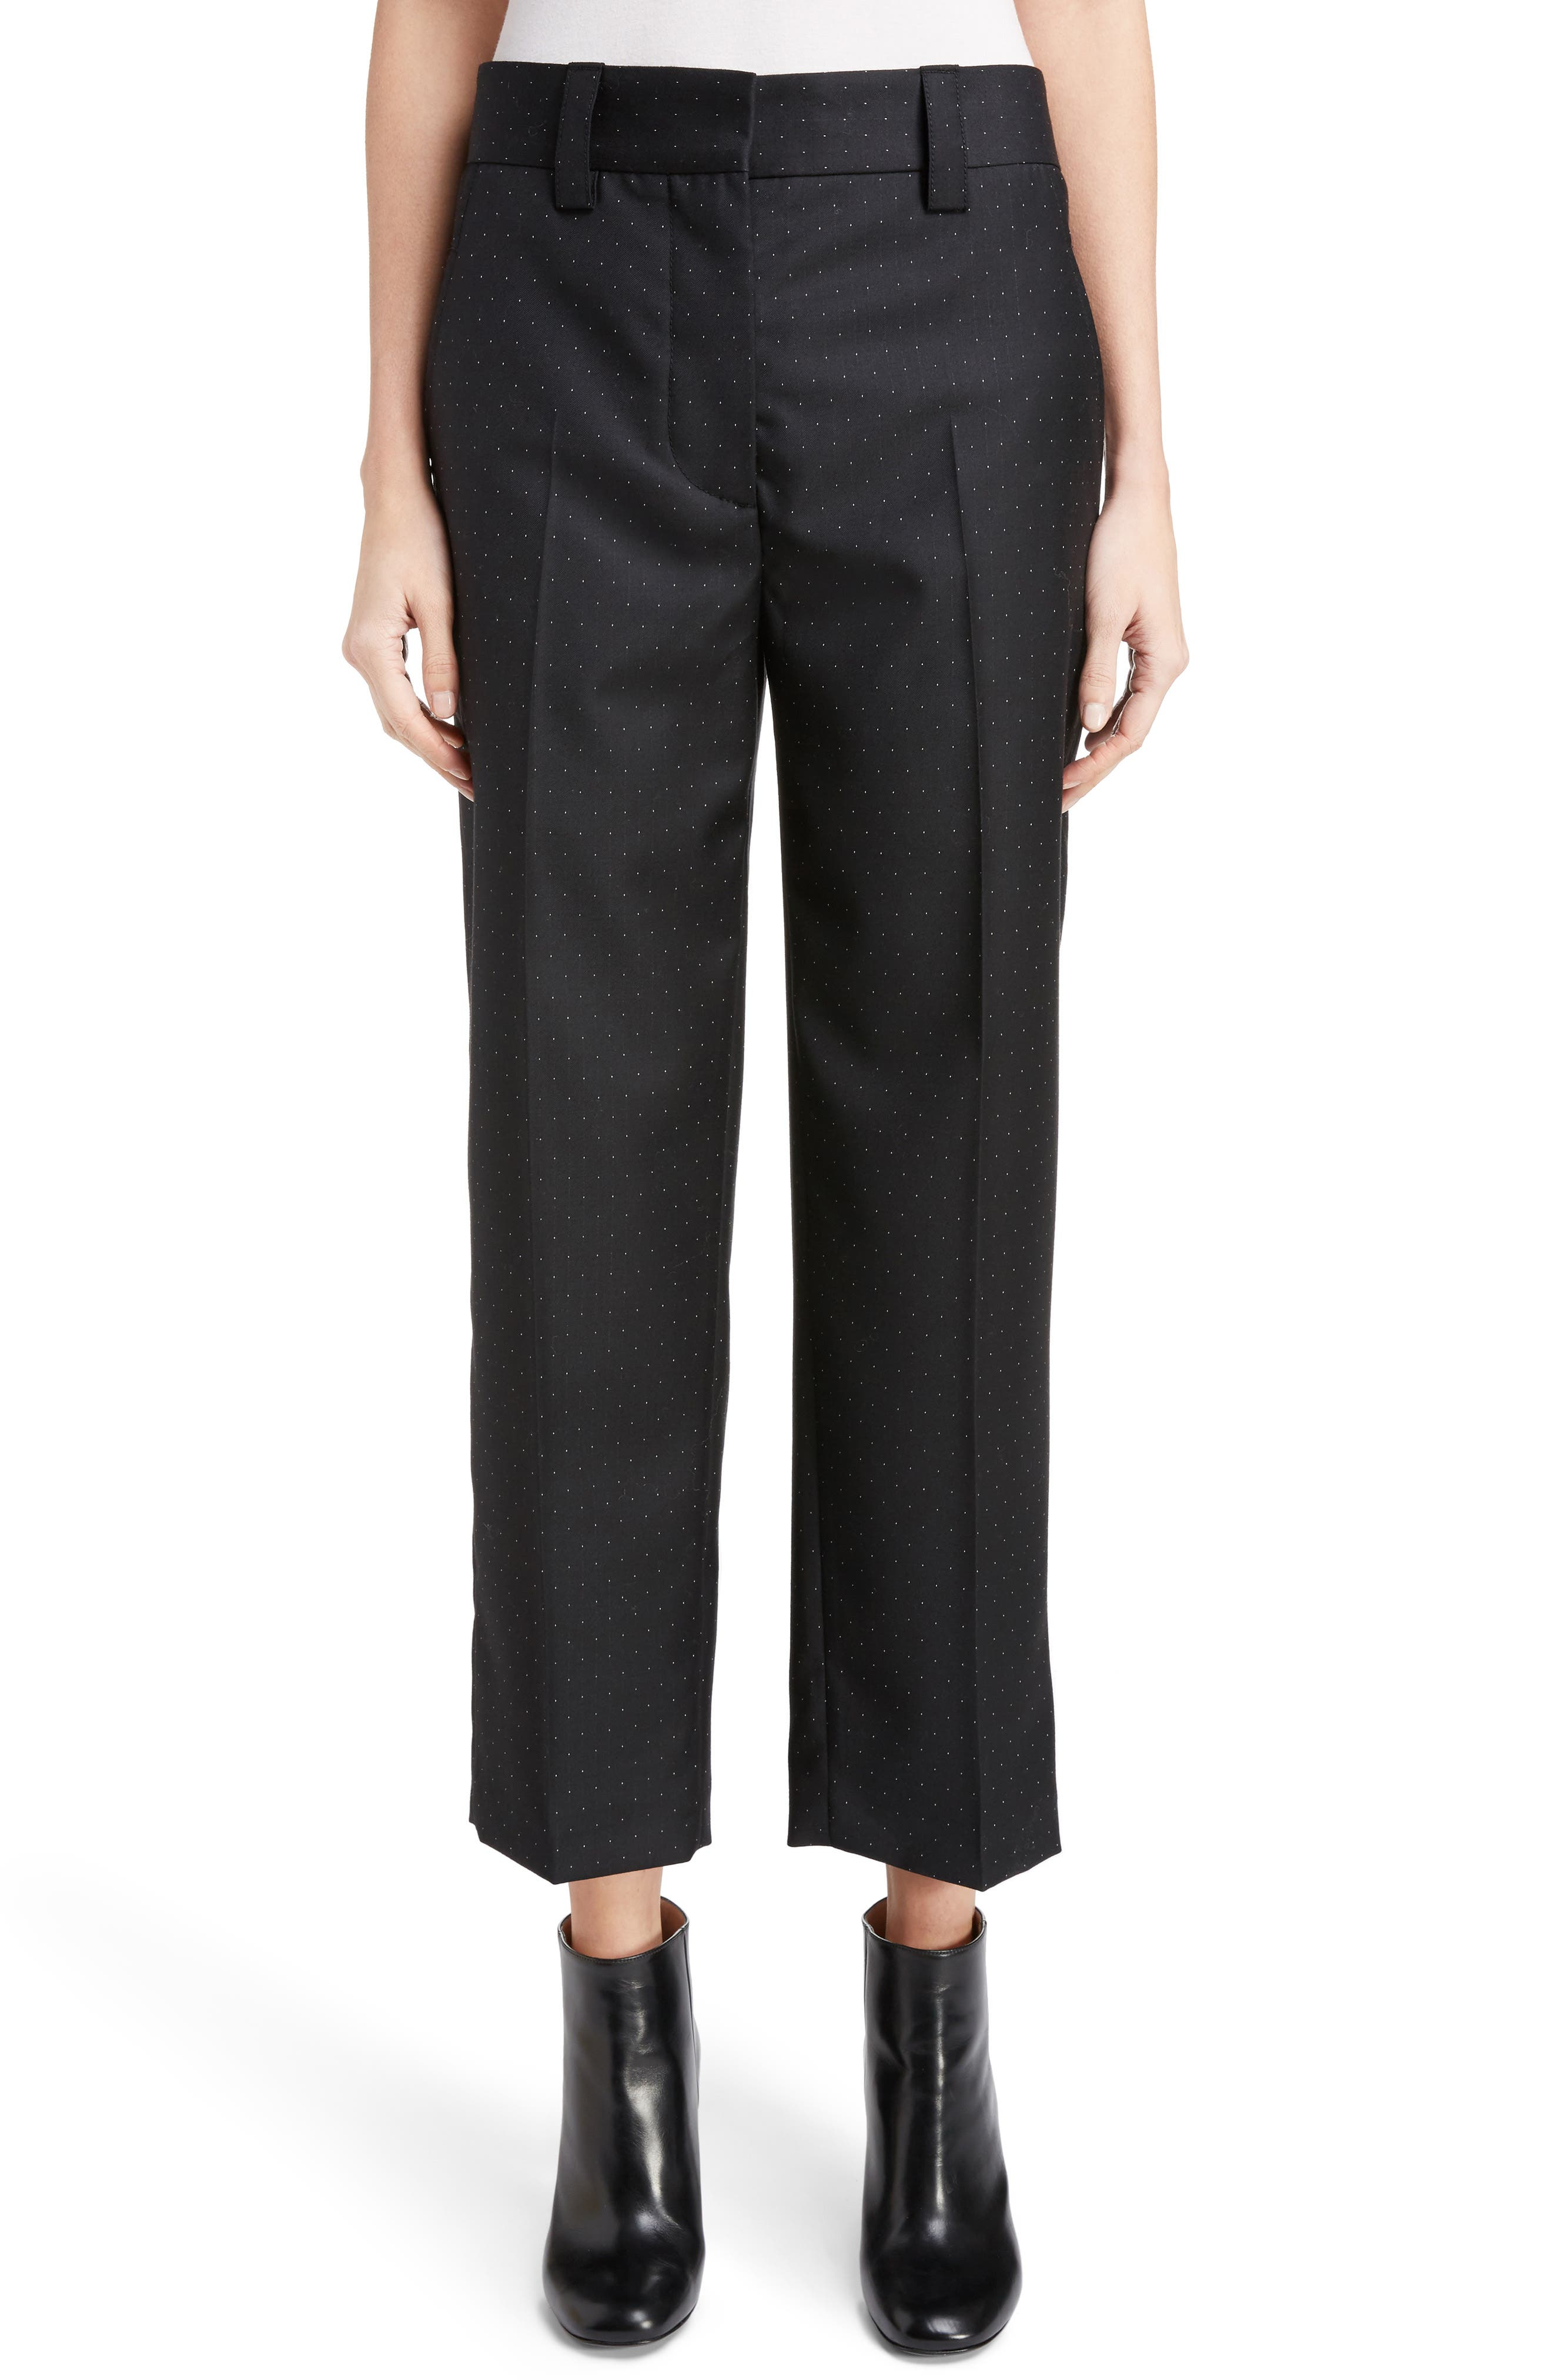 ACNE Studios Trea Dot Straight Leg Pants